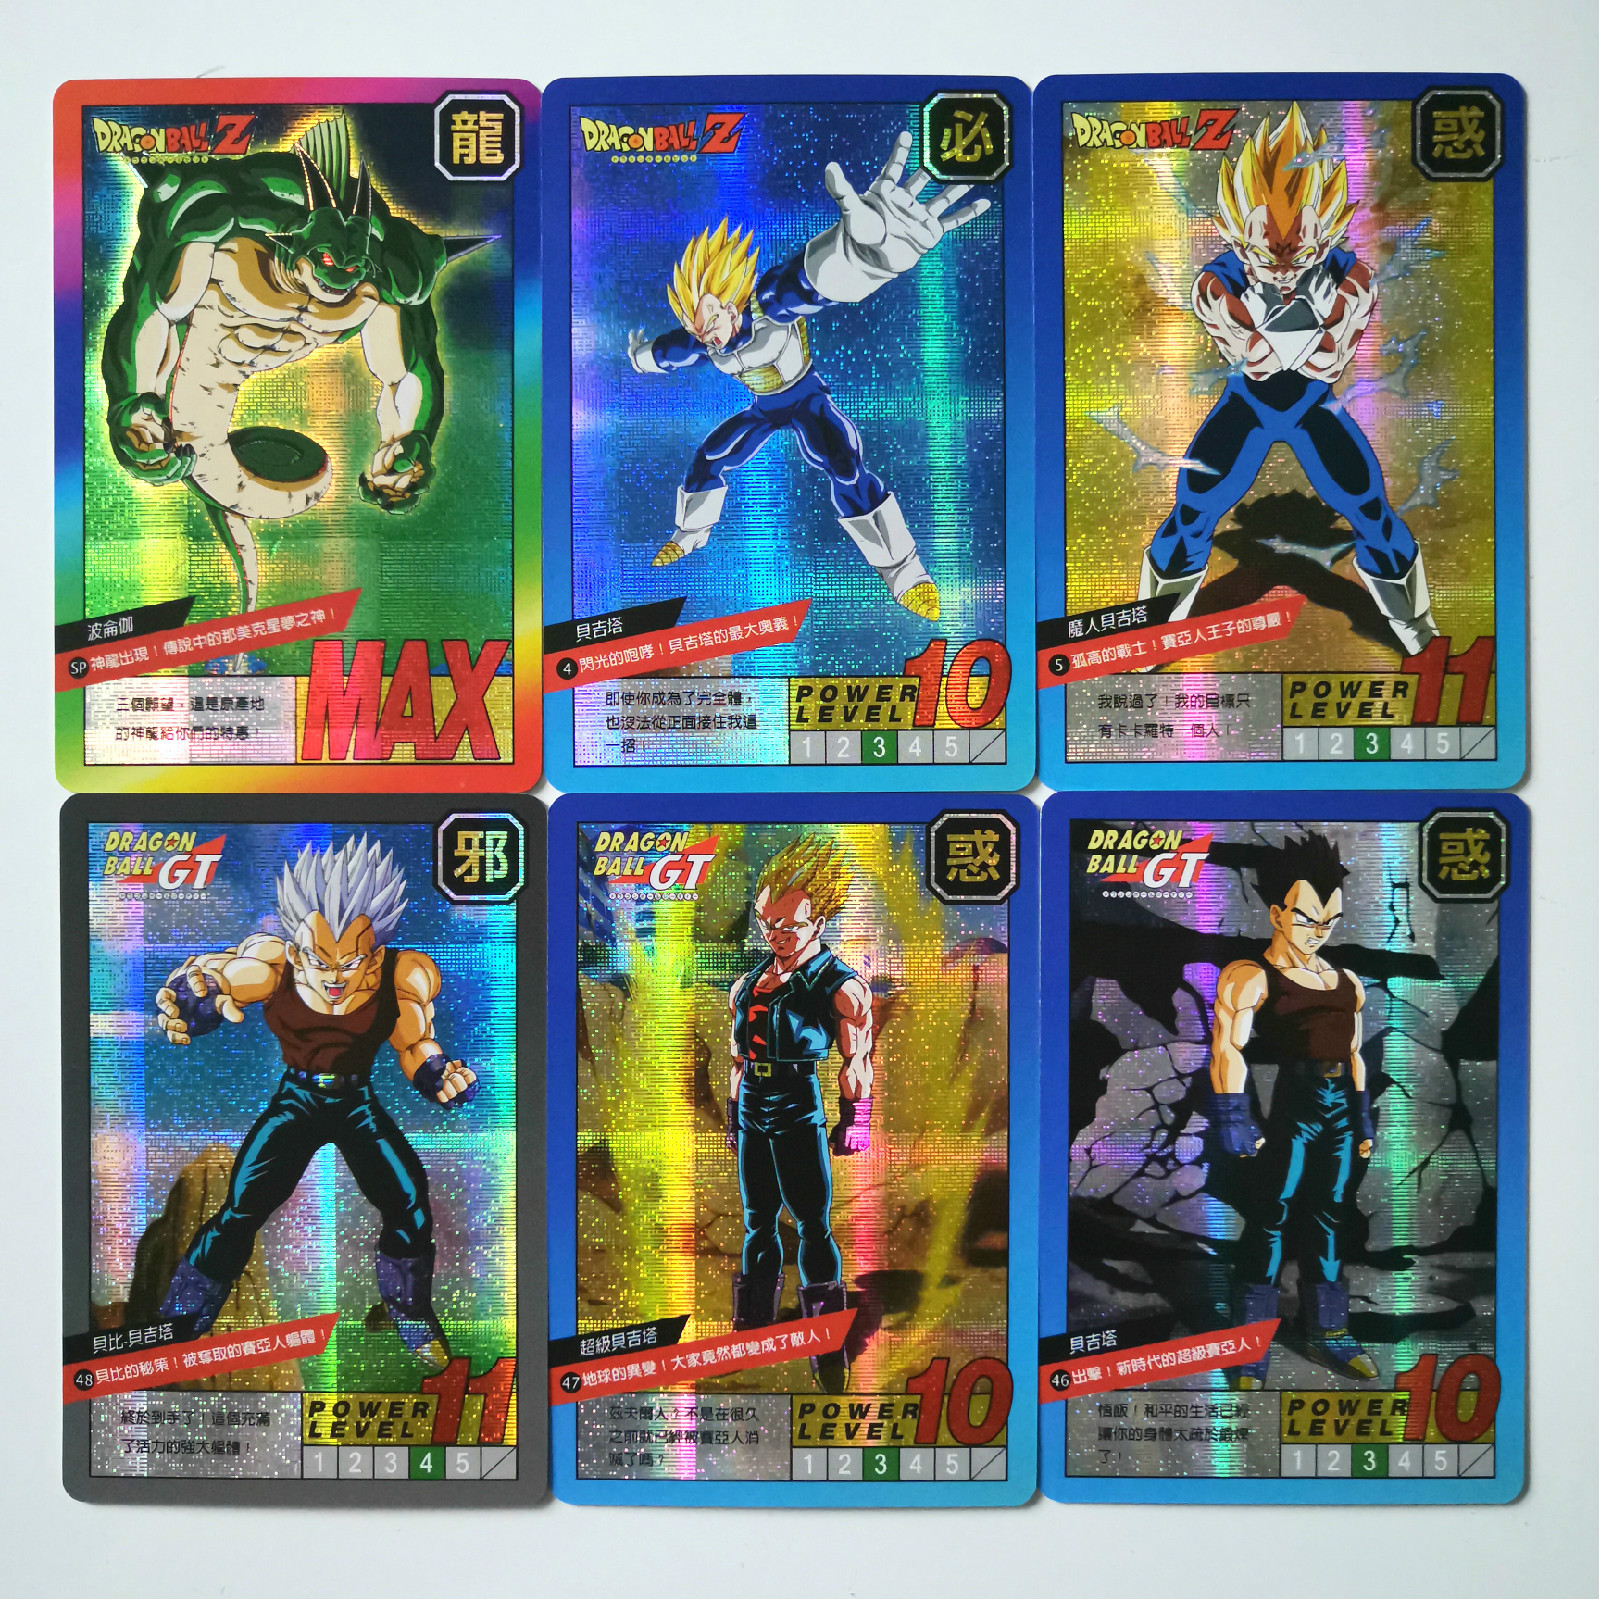 54pcs/set Super Dragon Ball Z JIA Fighting Heroes Battle Card Ultra Instinct Goku Vegeta Game Collection Cards